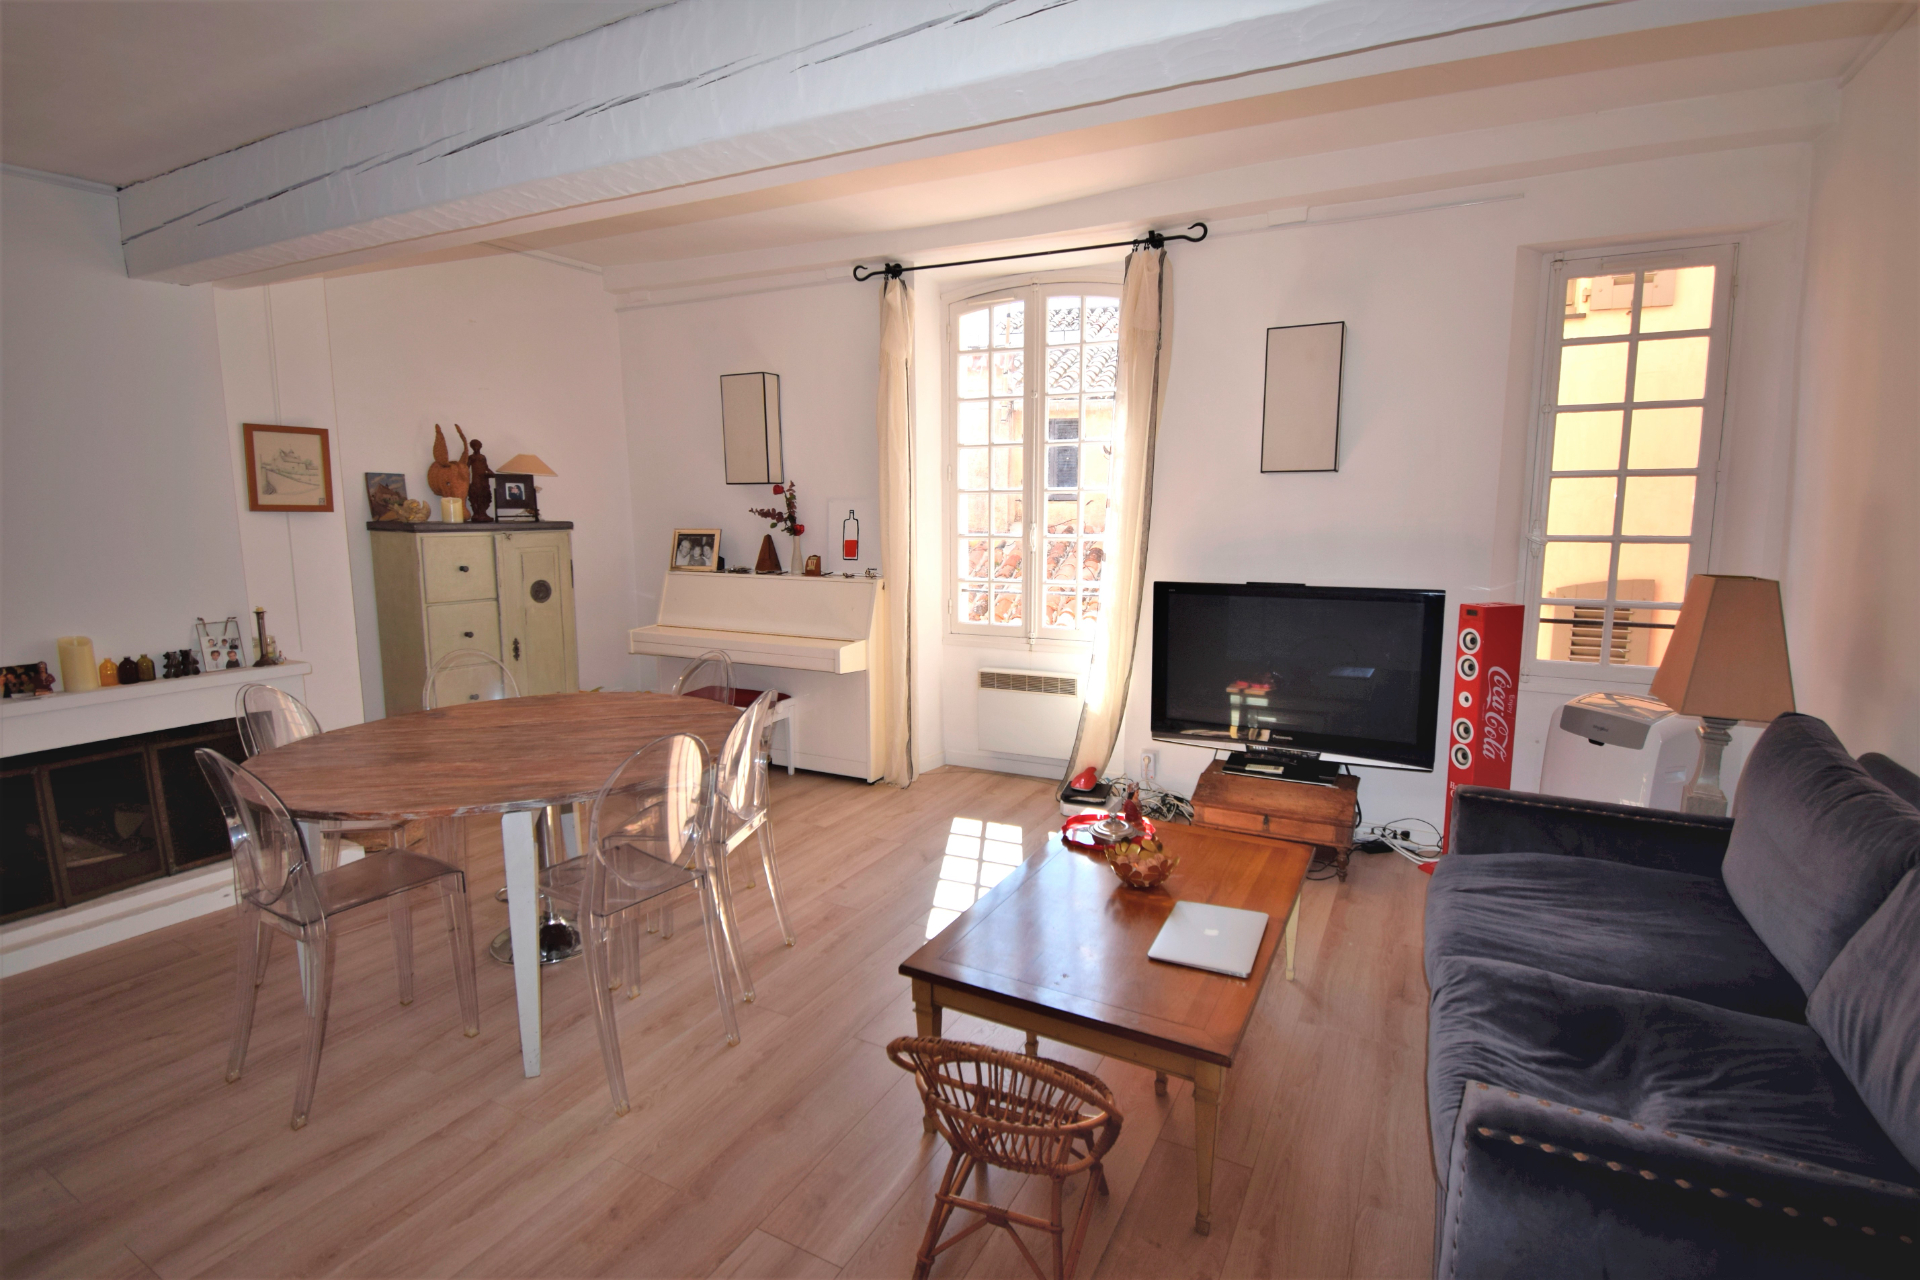 RARE, CENTRE HISTORIQUE DU VILLAGE, BEL APPARTEMENT TRAVERSANT